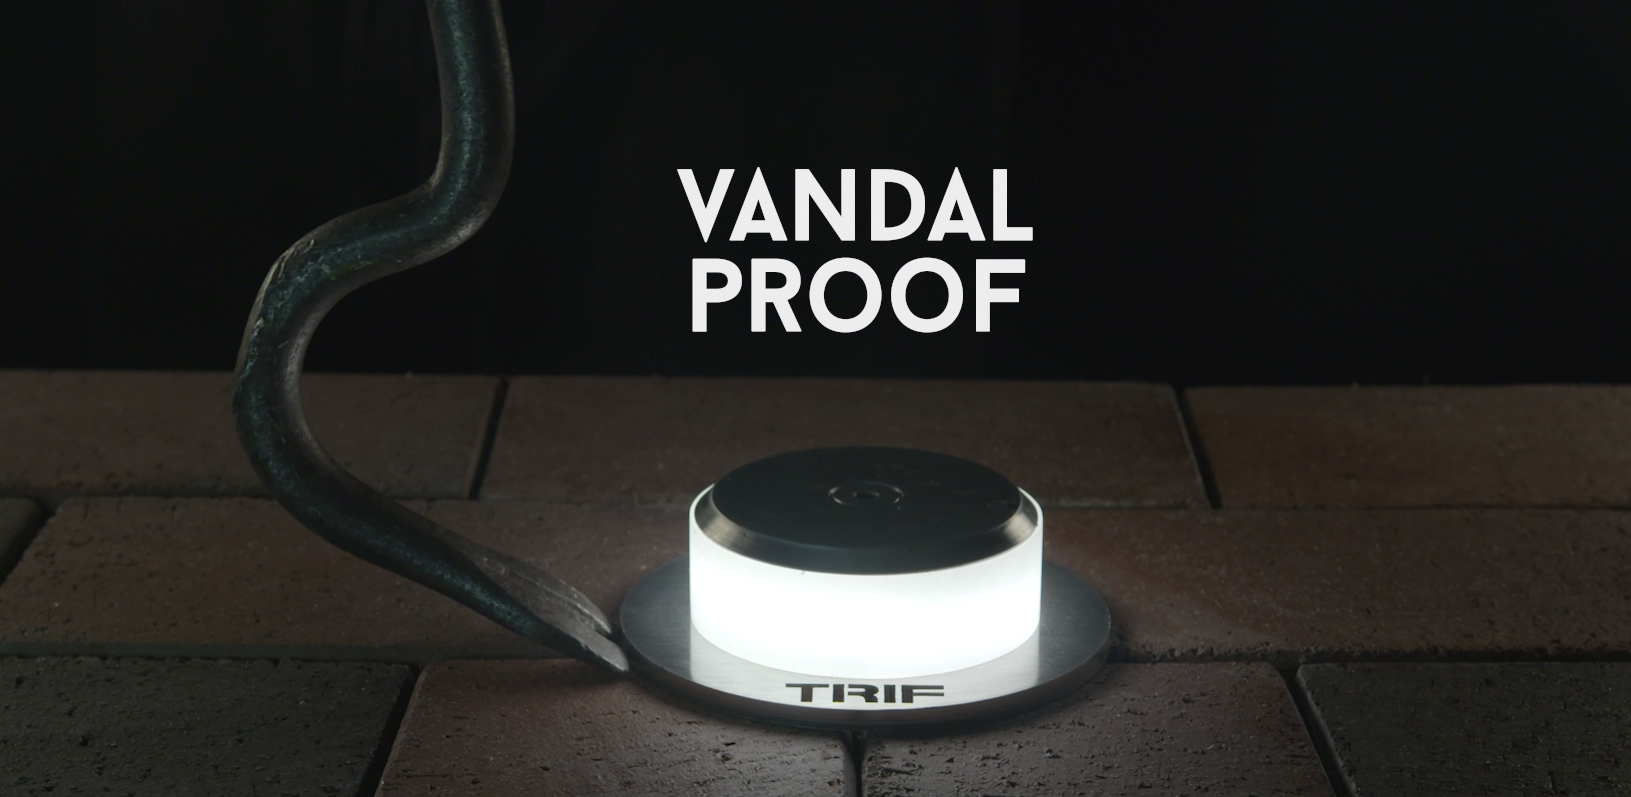 Vandal proof lamps from the company TRIF